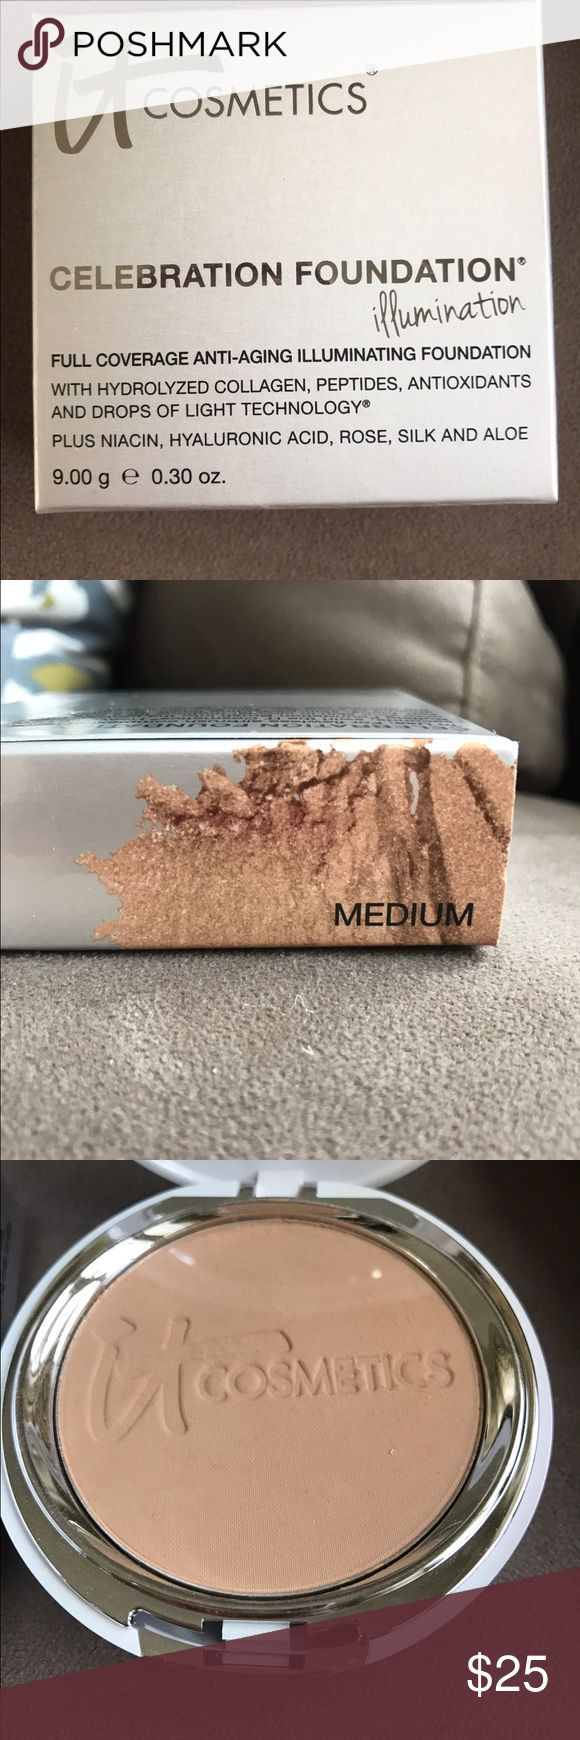 IT cosmetics Celebration foundation in Medium. Brand new never used IT cosmetics celebration foundation in Medium shade. I adore this product! Great coverage, flawless finish. It Cosmetics Makeup Foundation